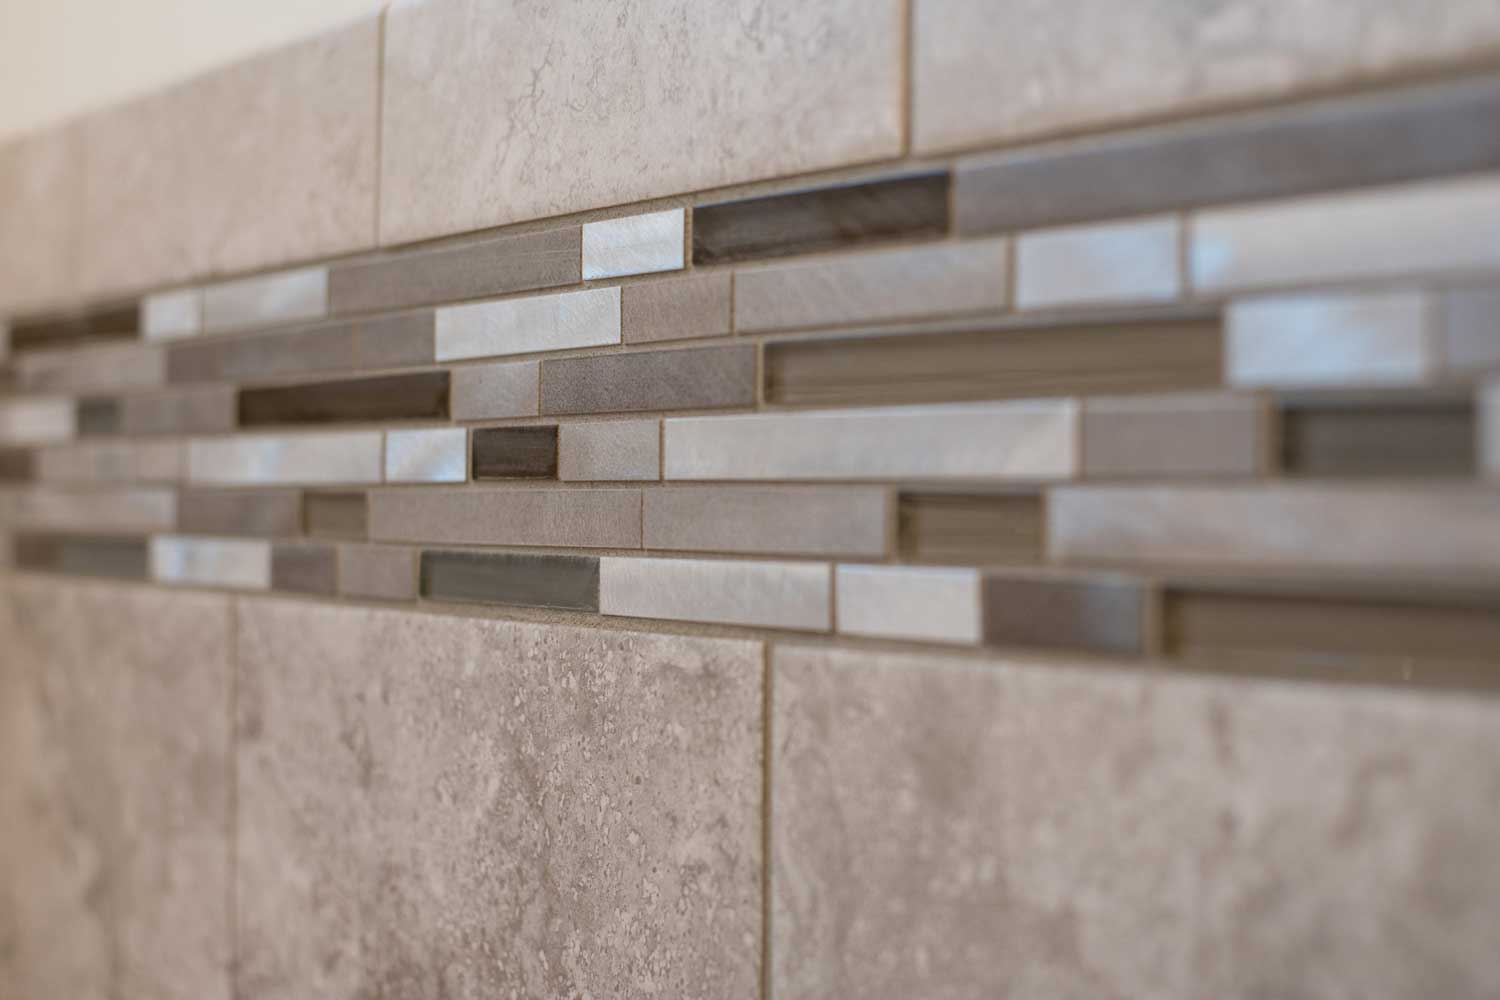 6 inch strip of shower tiles of multiple shades of brown